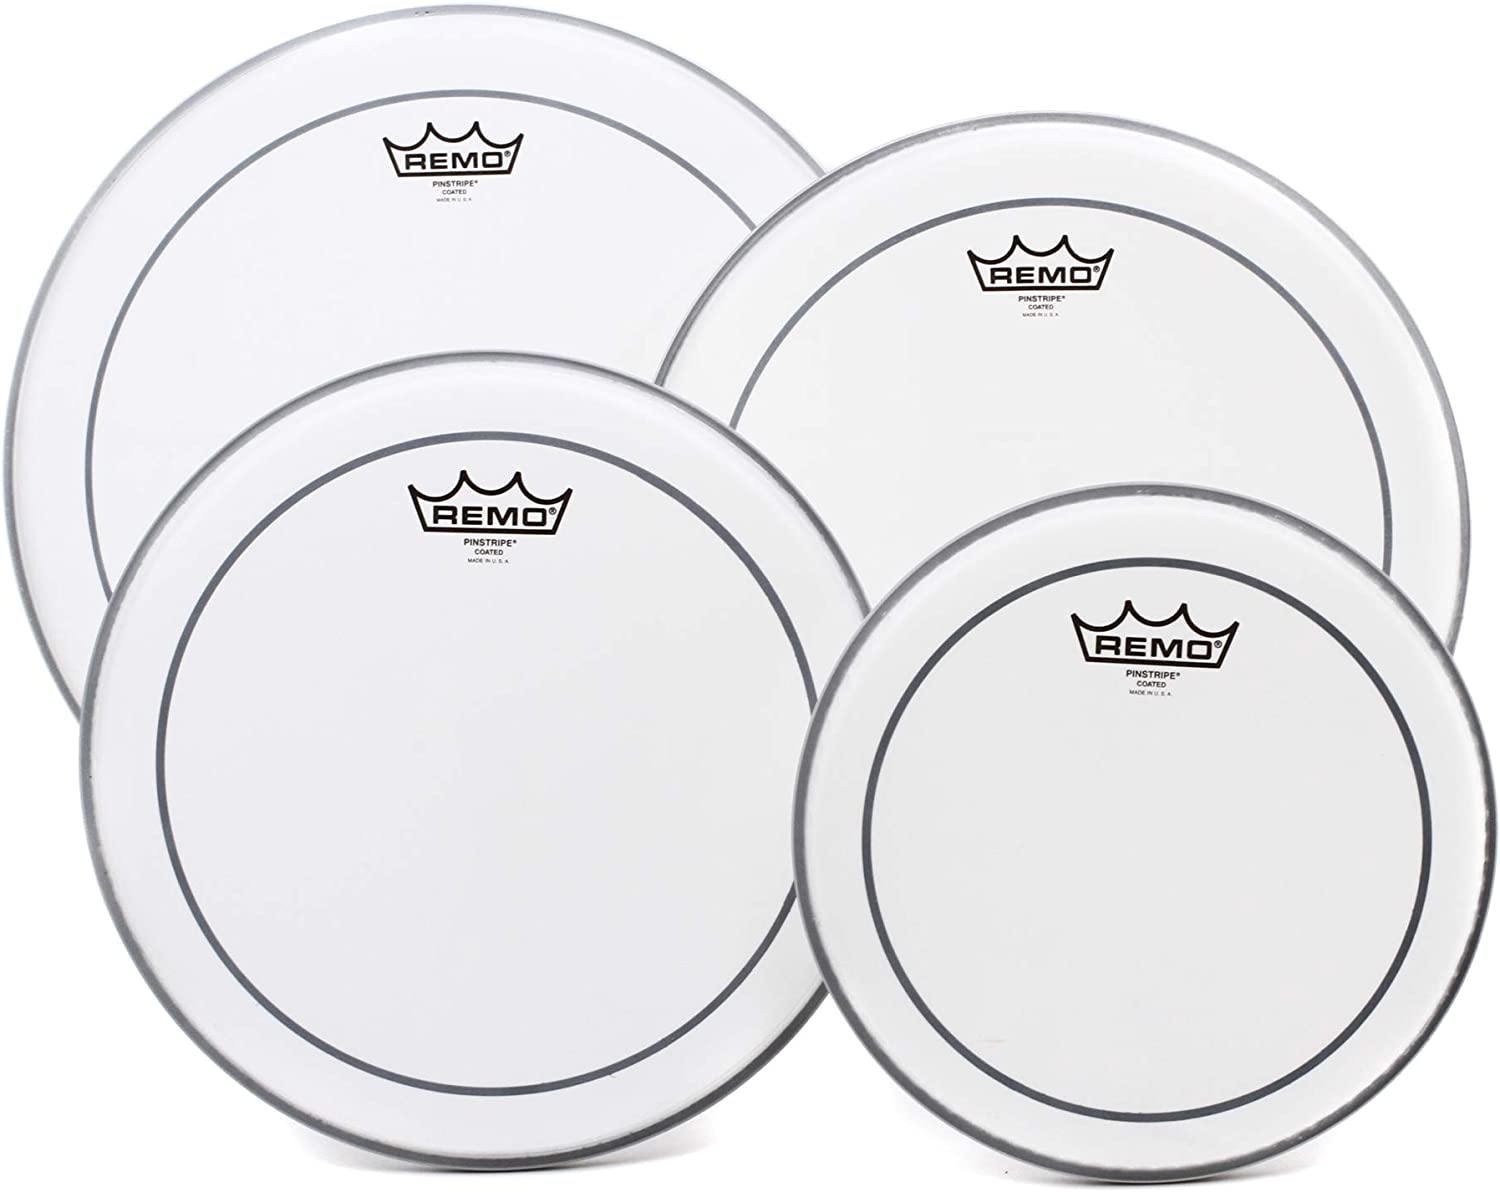 Remo Max 79% OFF Pinstripe 4-Piece Tom Pack Max 82% OFF - 14 10 Coated 12 Inches 16